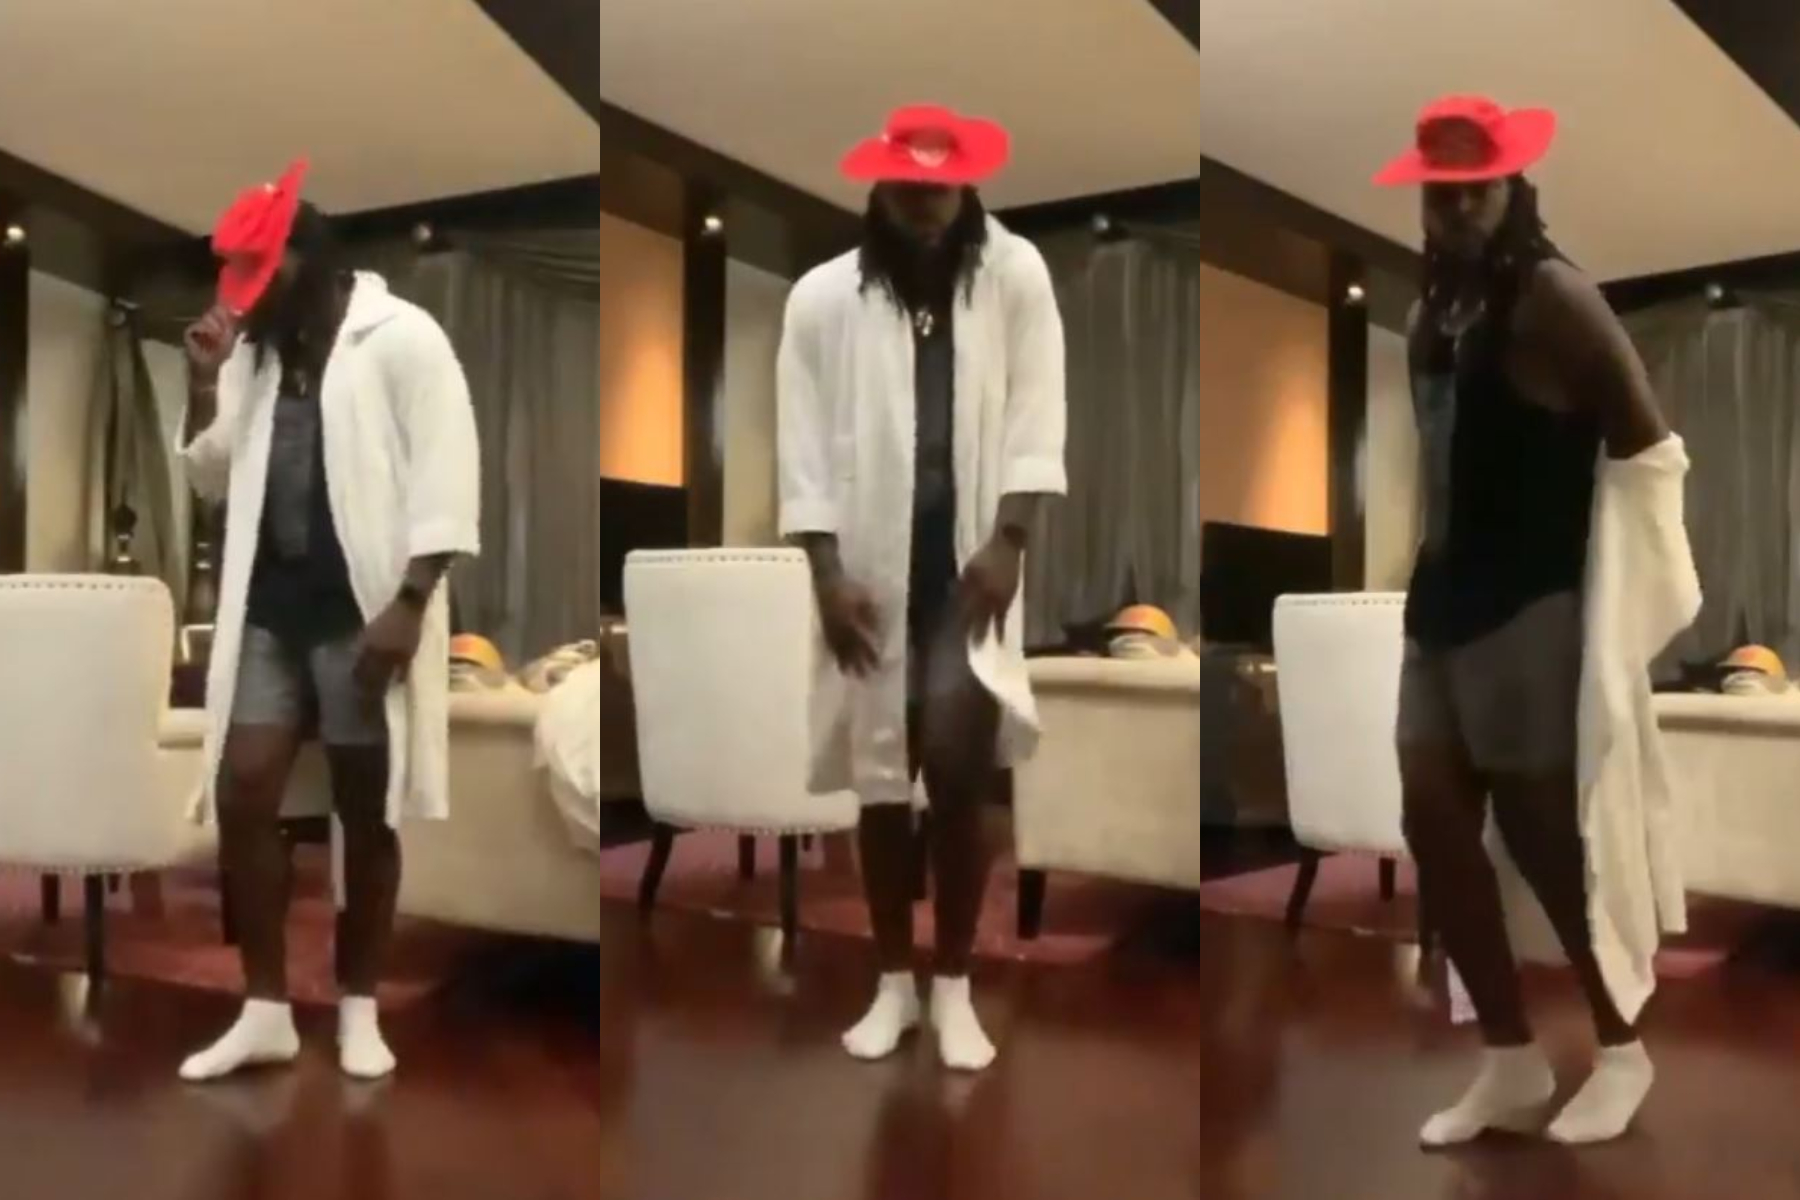 Chris Gayle danced to celebrate the end of his mandatory quarantine period | Twitter